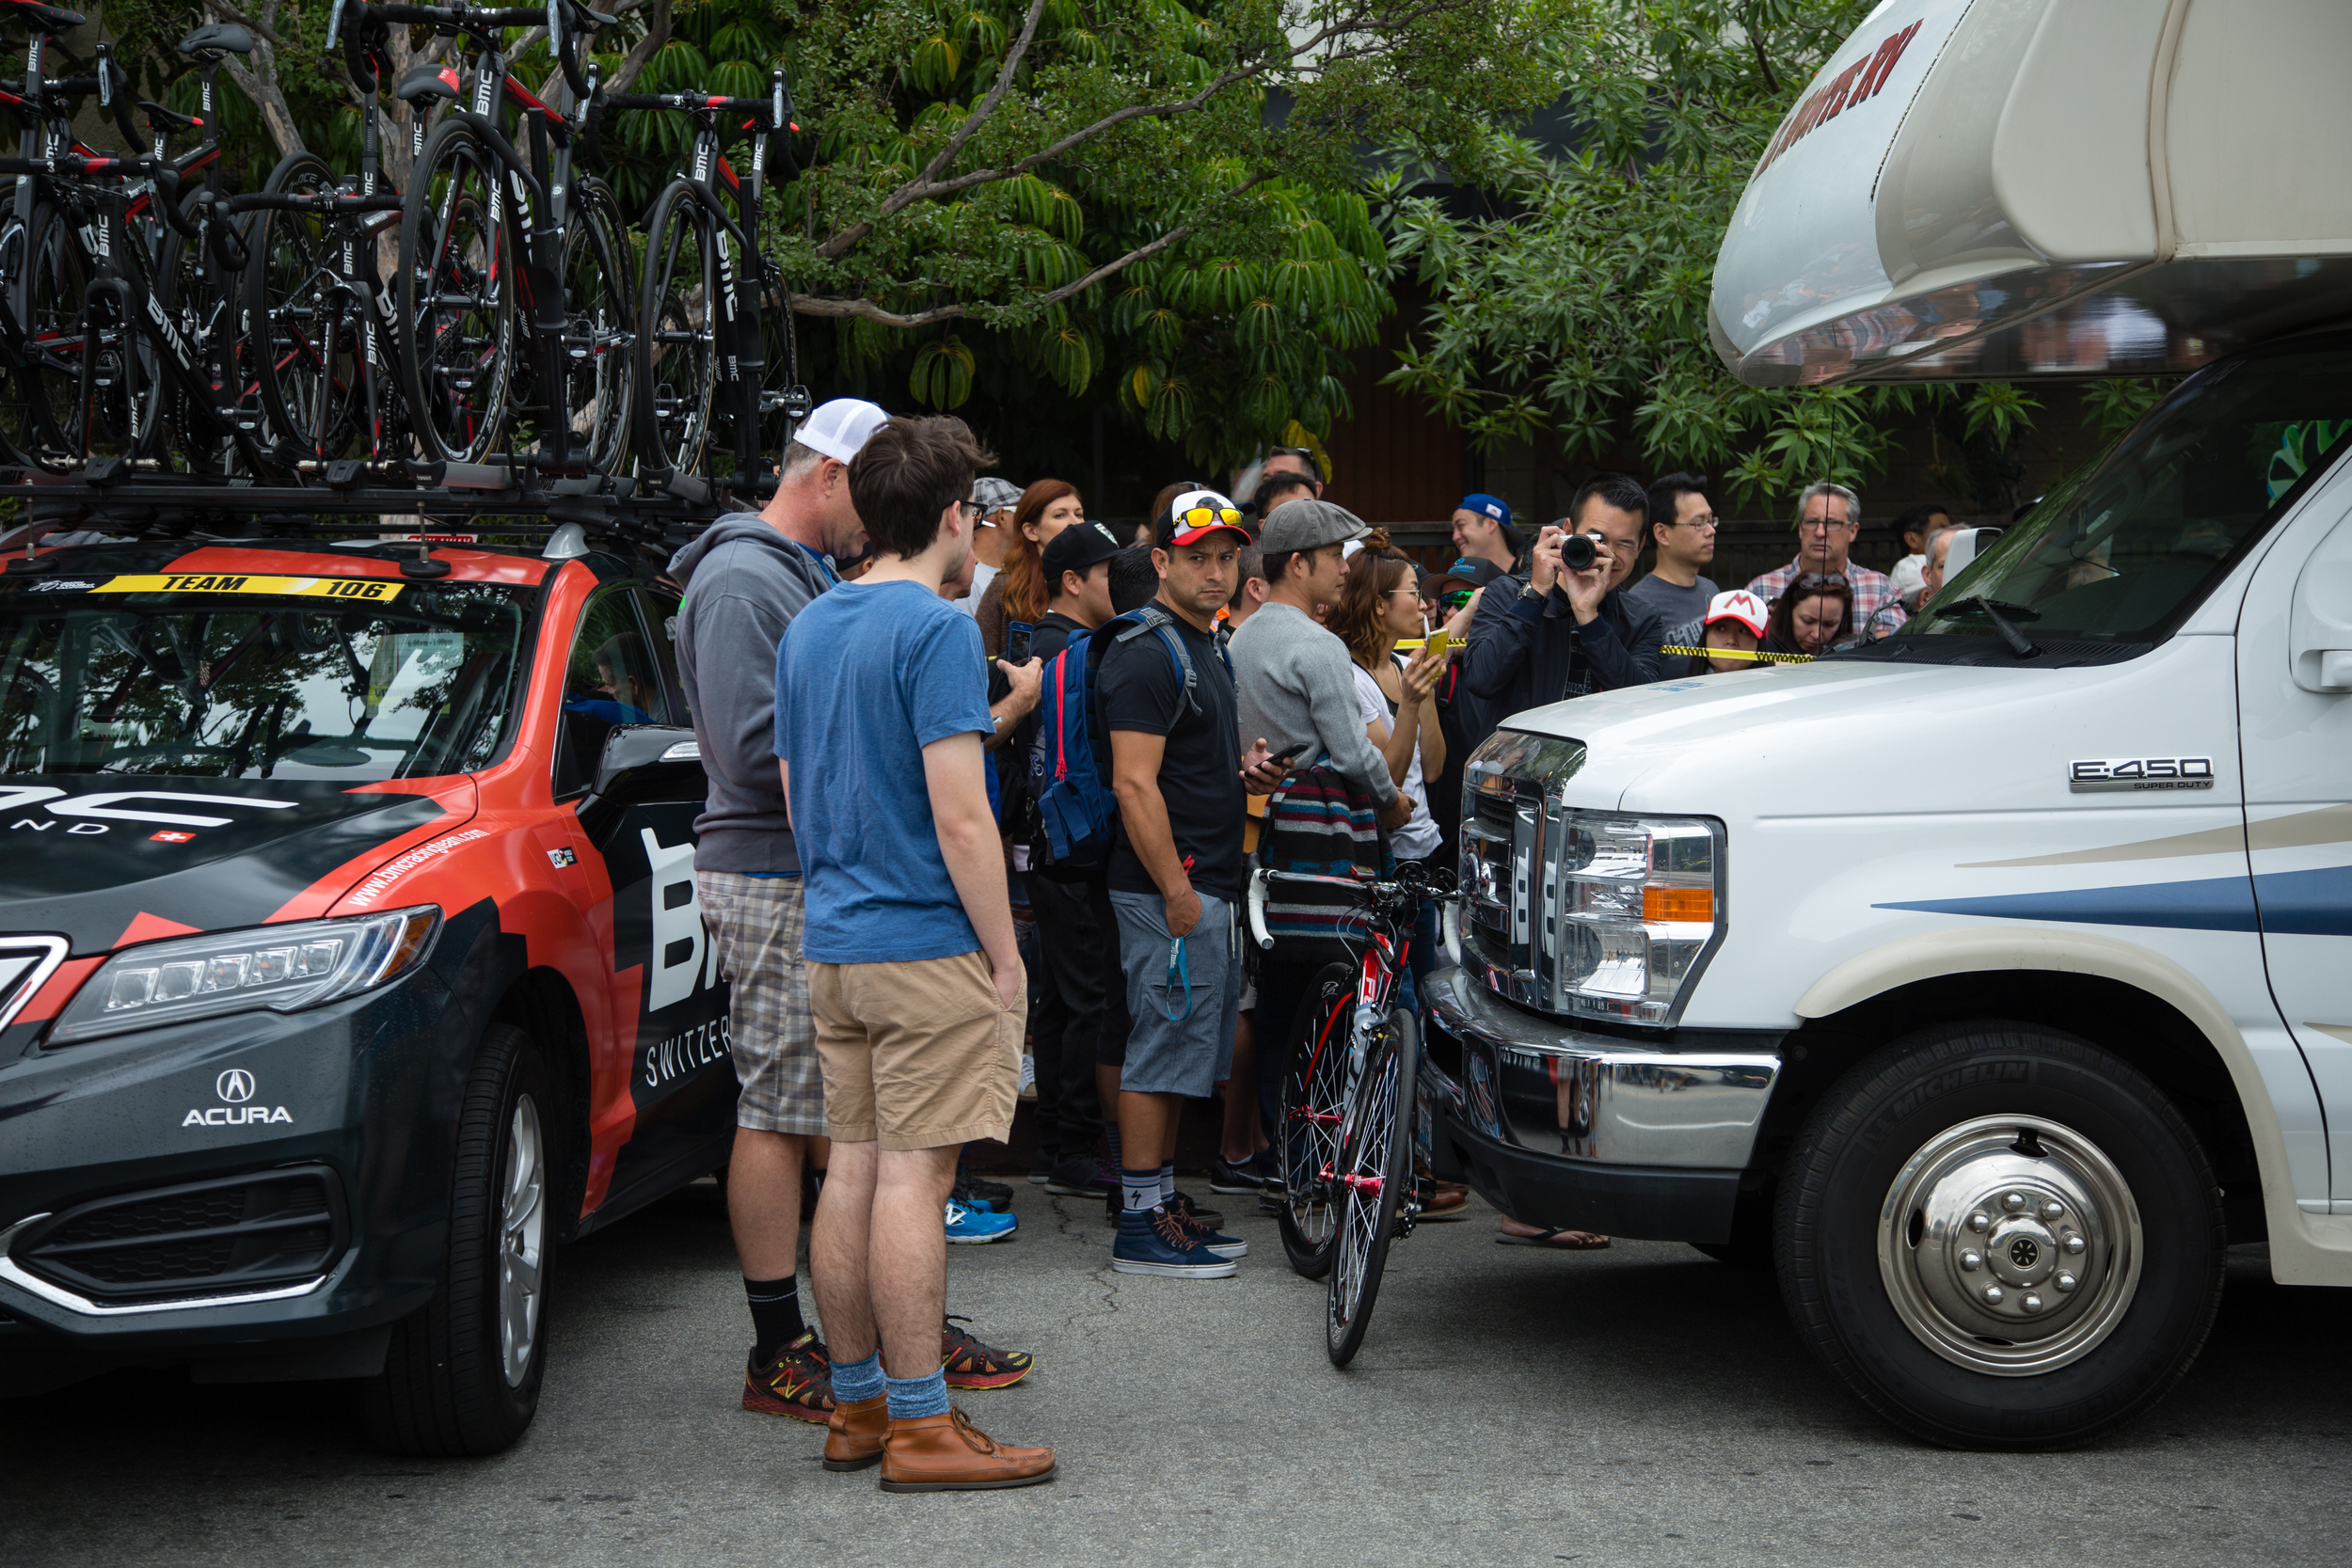 Crowd waits for World Champion Peter Sagan to emerge from the Tinkoff RV.